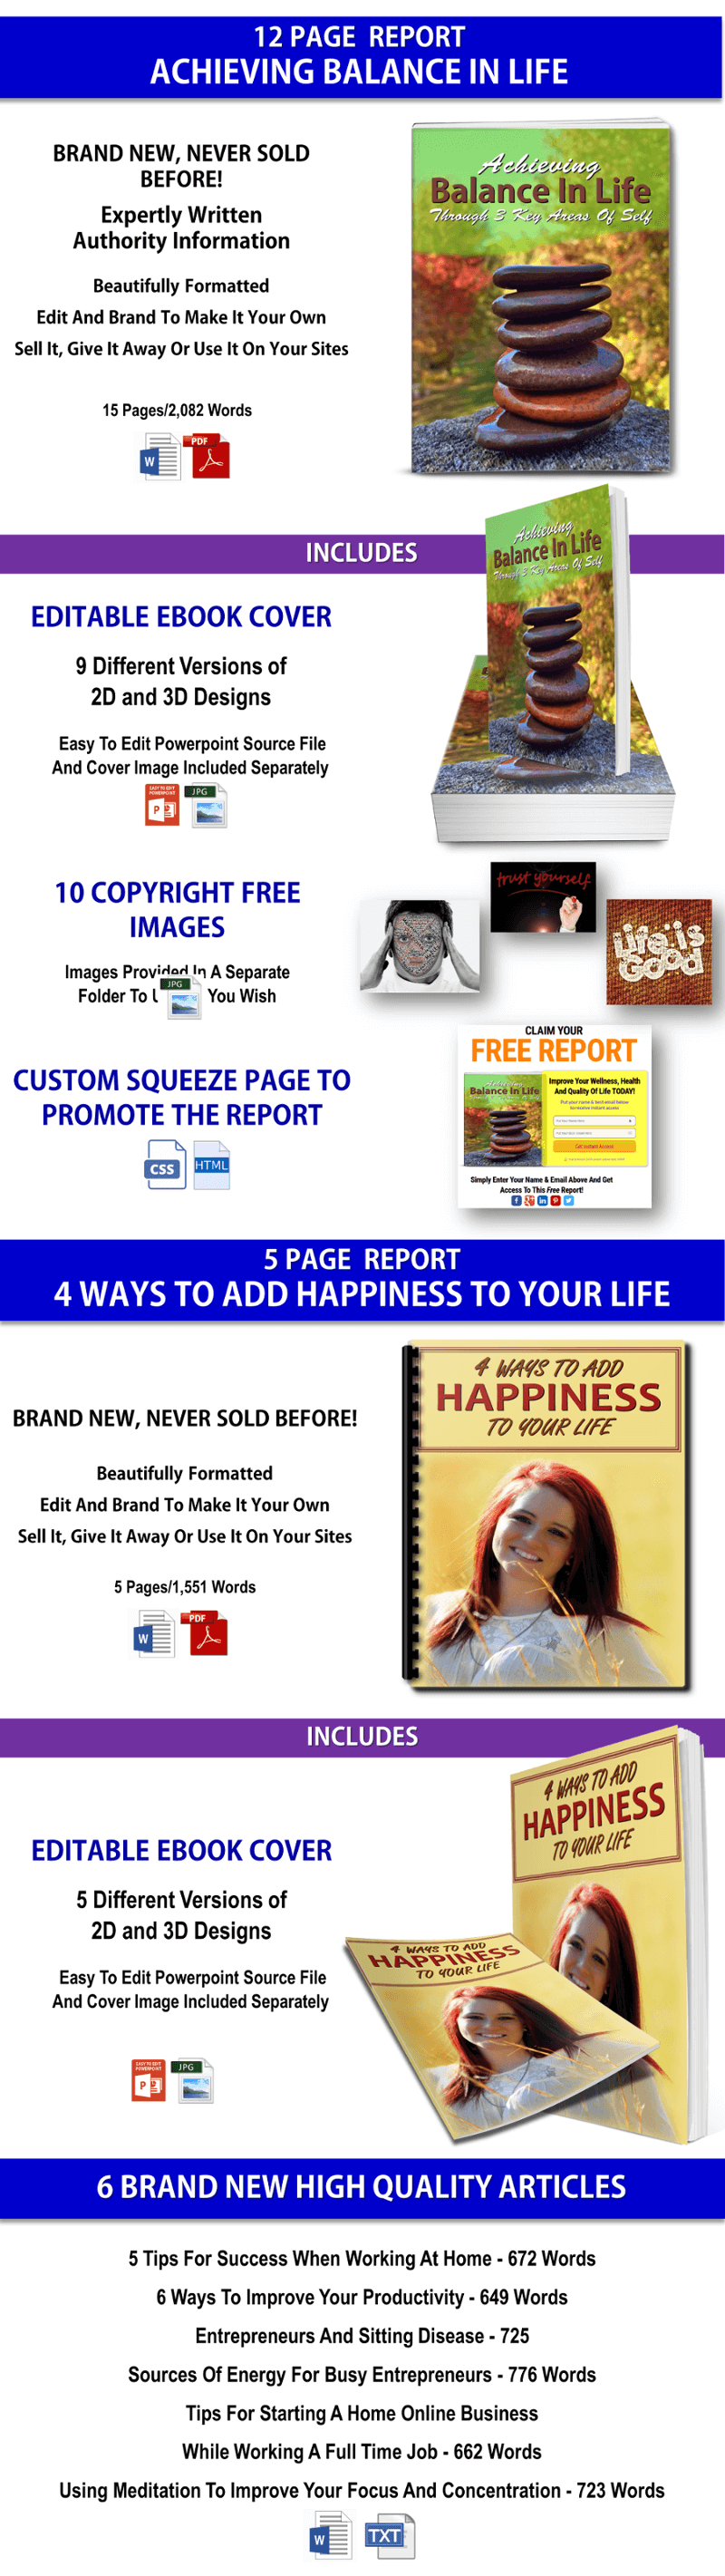 Life Balance and Happiness PLR